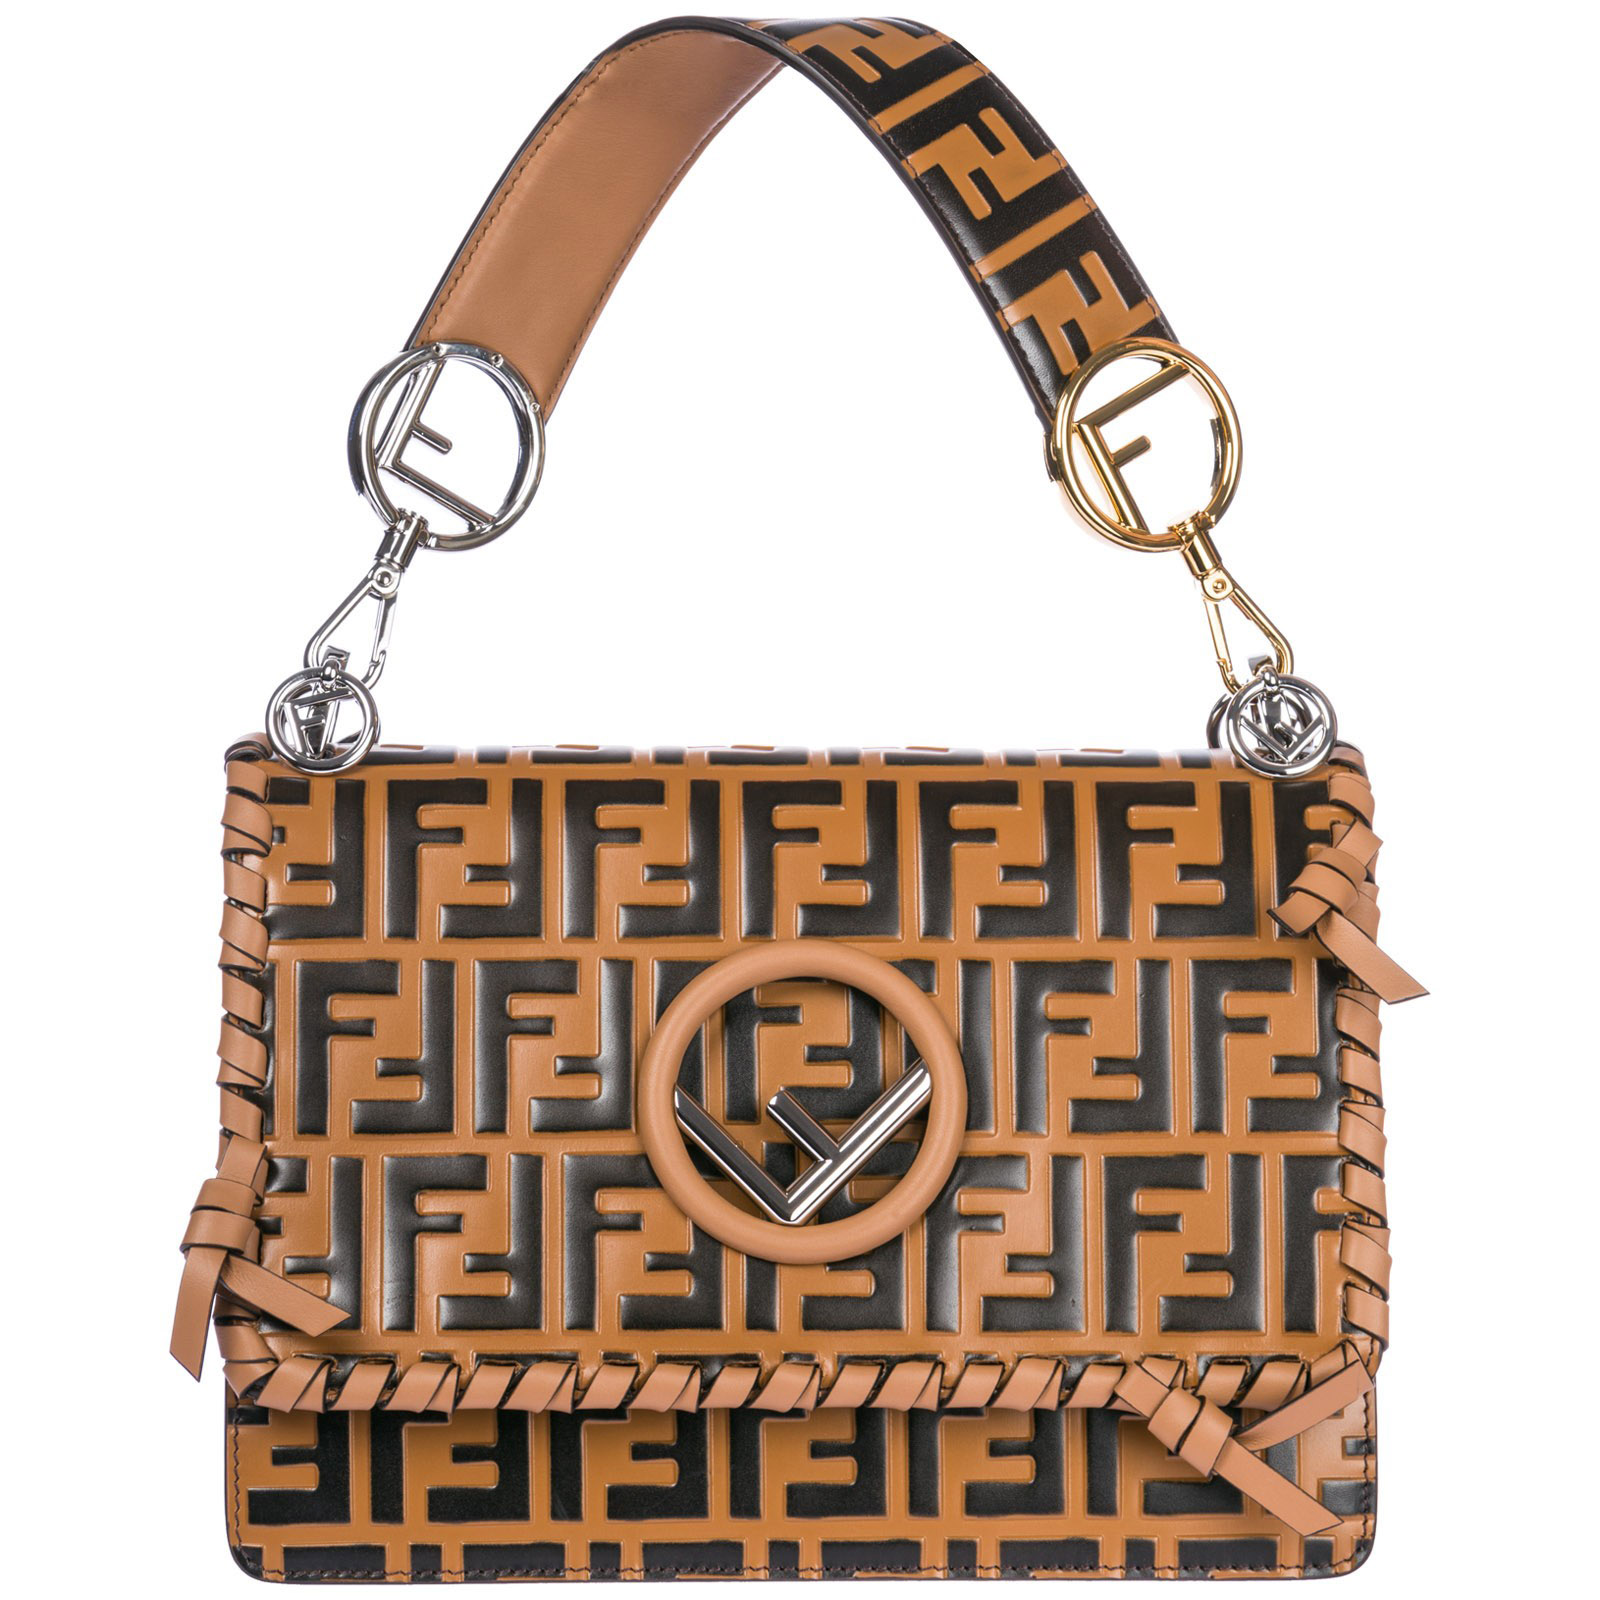 372fbfeafa0f FENDI WOMEN S LEATHER HANDBAG SHOPPING BAG PURSE KAN I F